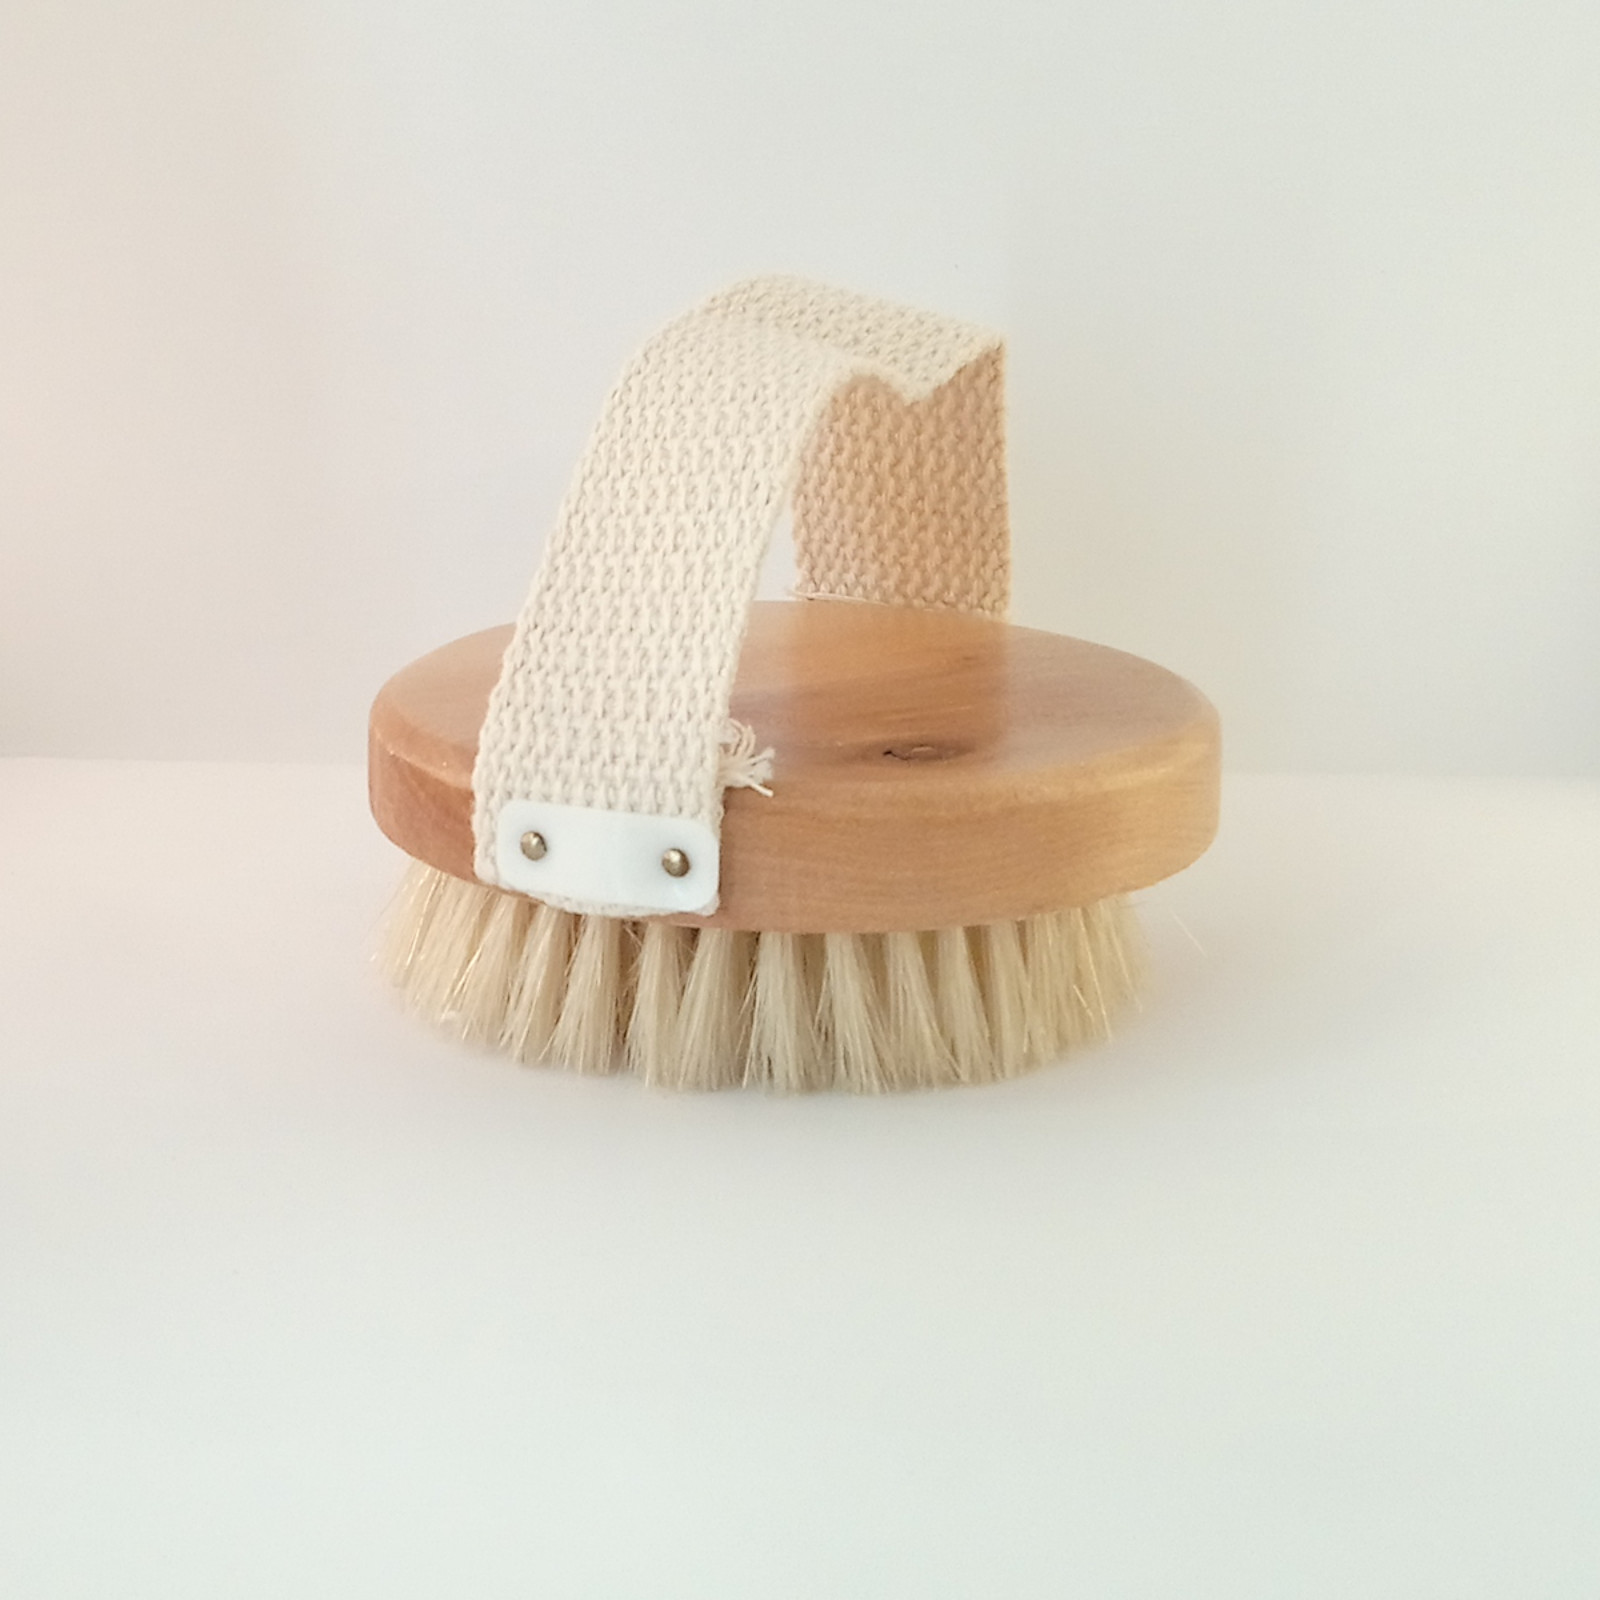 Natural Wood Dry Skin Bathing Soft Bristle hand Brush with Strap Improve your beauty health routine with dry brushing regularly to improve your skins reducing dull looking skin for a radiant glow